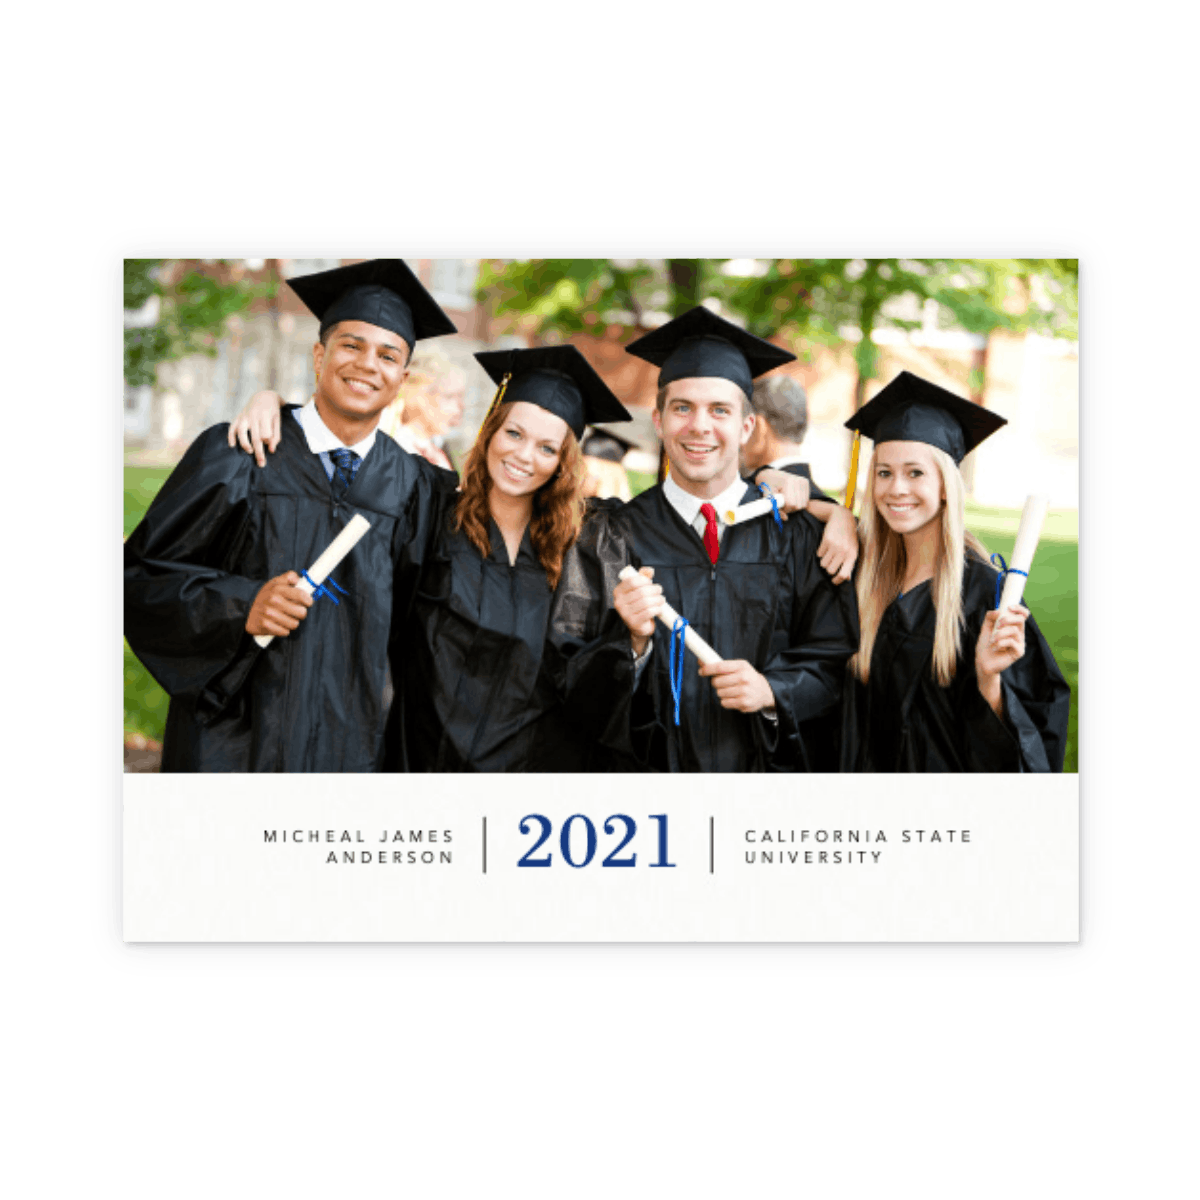 Https%3a%2f%2fwww.papier.com%2fproduct image%2f71203%2f10%2fgraduation year 16806 front 1581947138.png?ixlib=rb 1.1